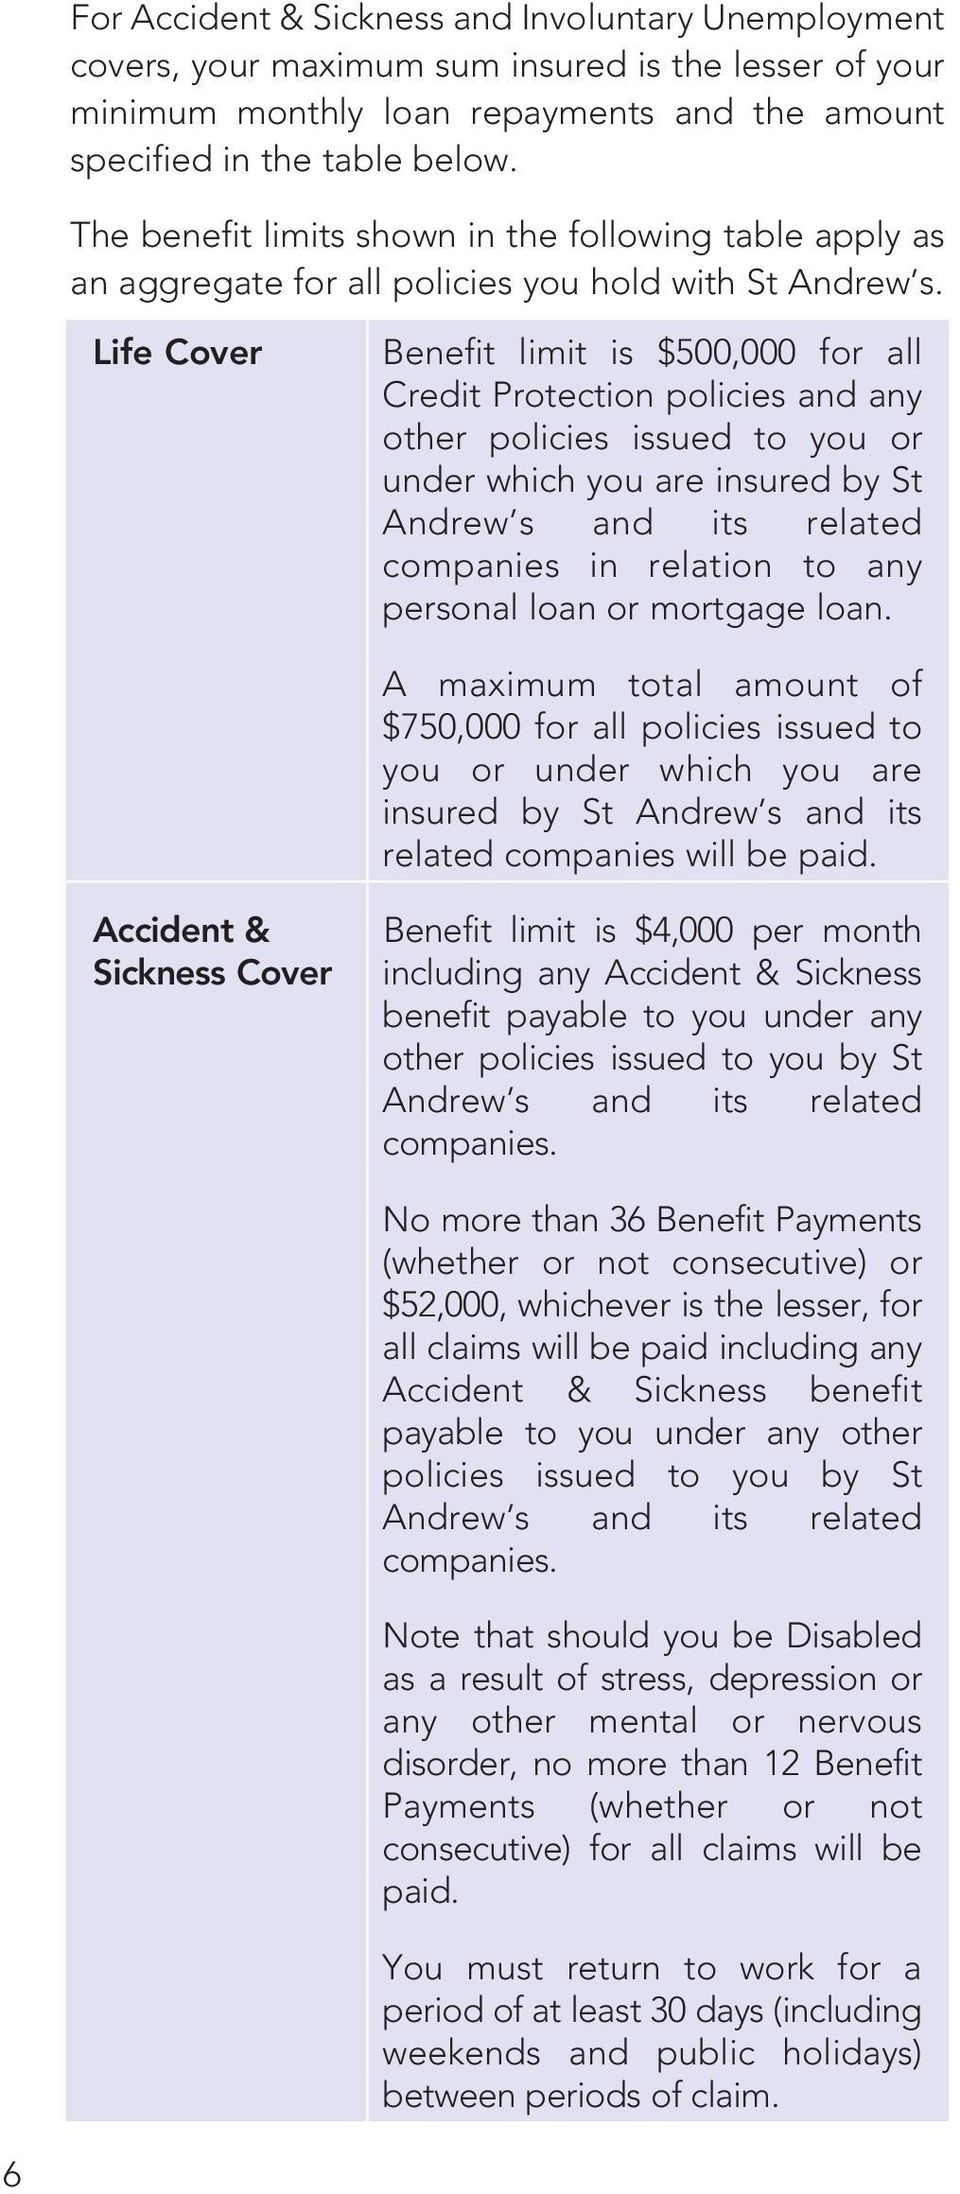 Life Cover Benefit limit is $500,000 for all Credit Protection policies and any other policies issued to you or under which you are insured by St Andrew s and its related companies in relation to any